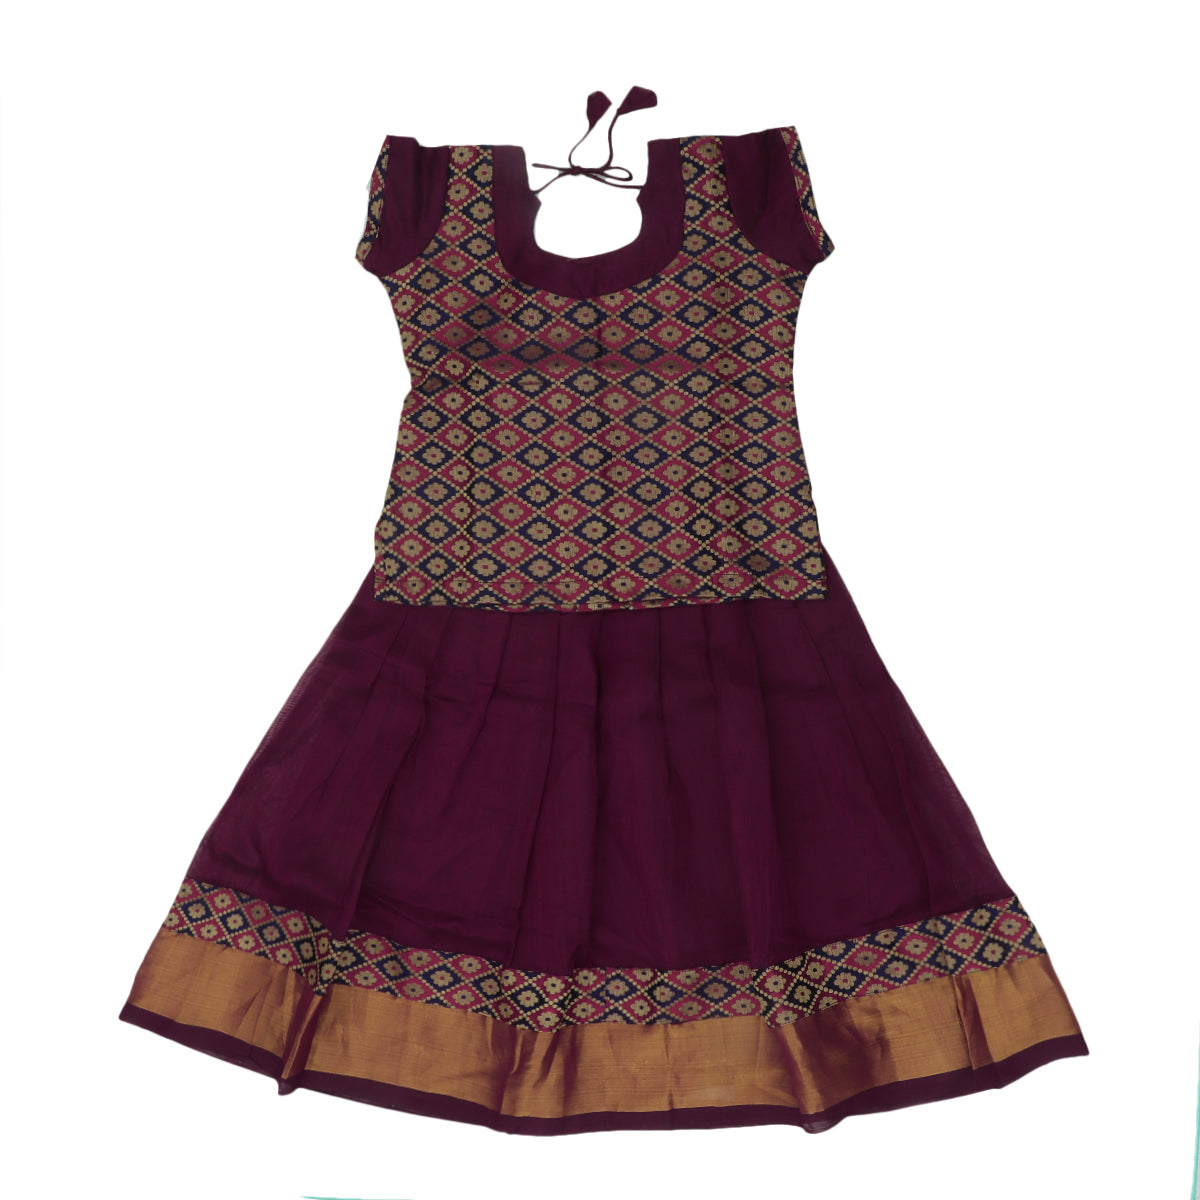 Paavadai Sattai -Maroon with Blue Threaded and Maroon with Zari border(4 years)